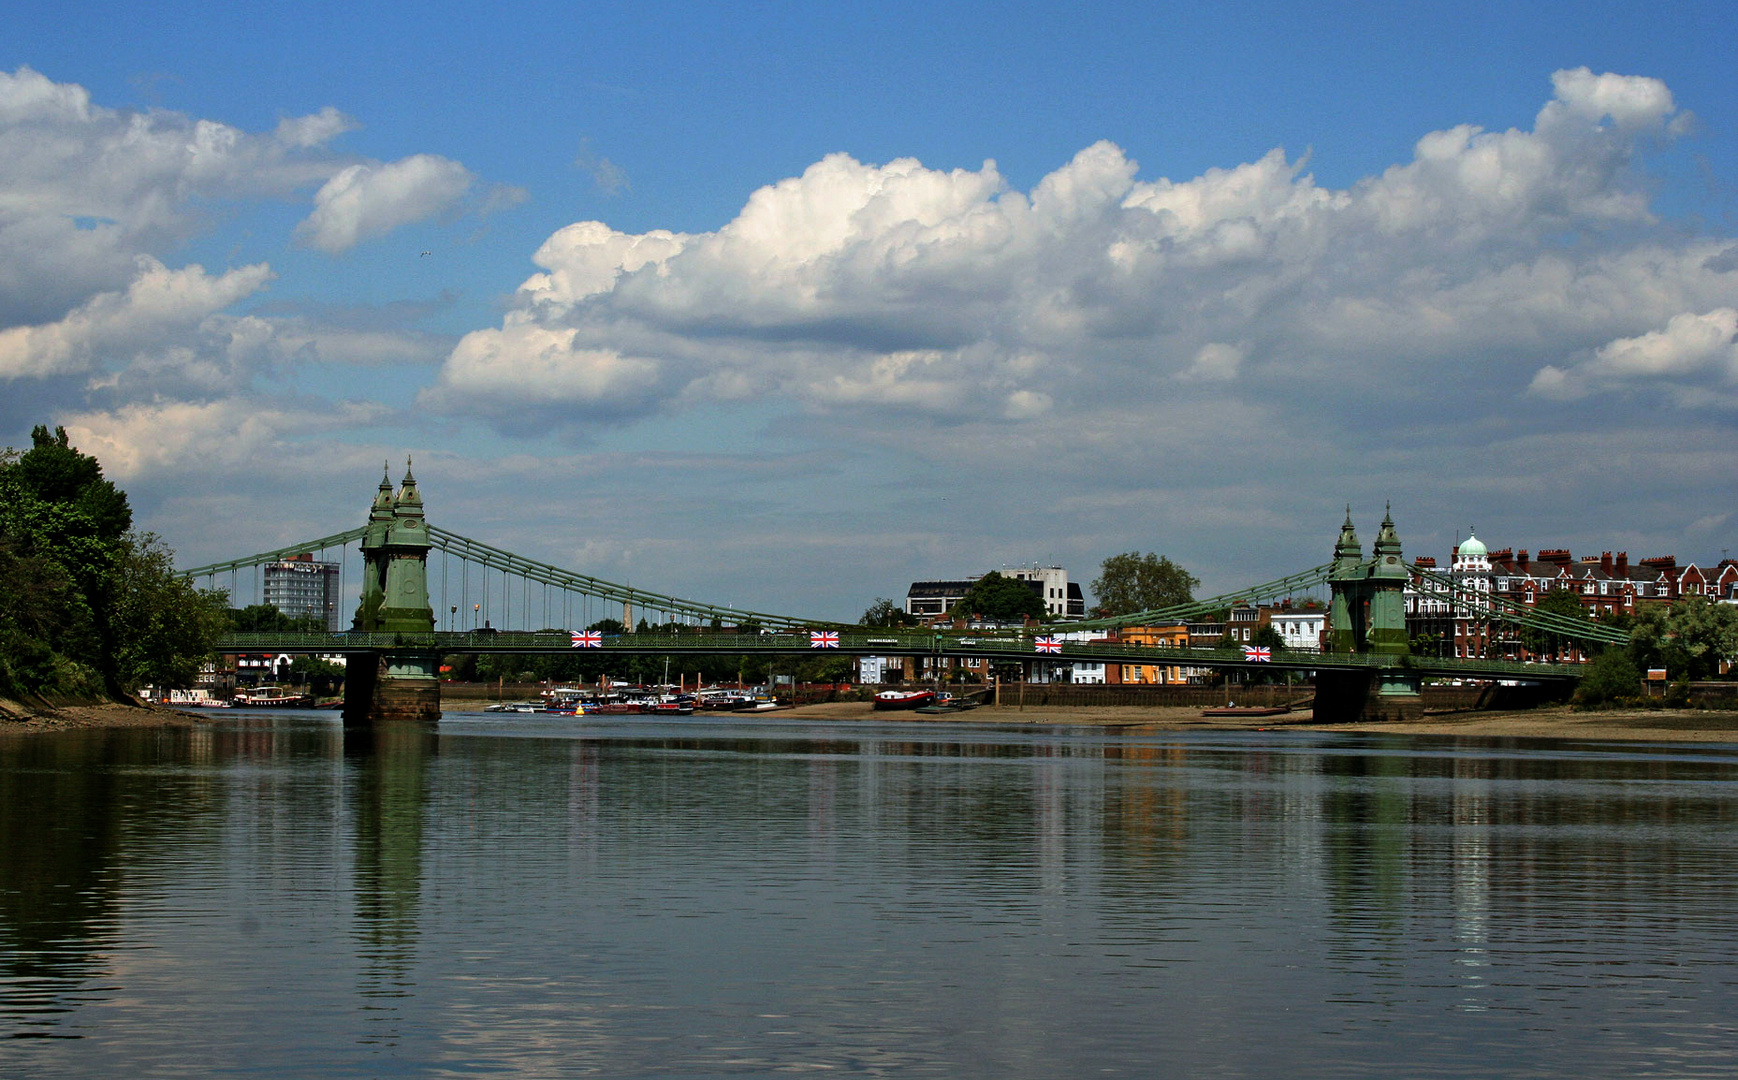 Themsefahrt von London nach Hampton Court 58: Hammersmith Bridge